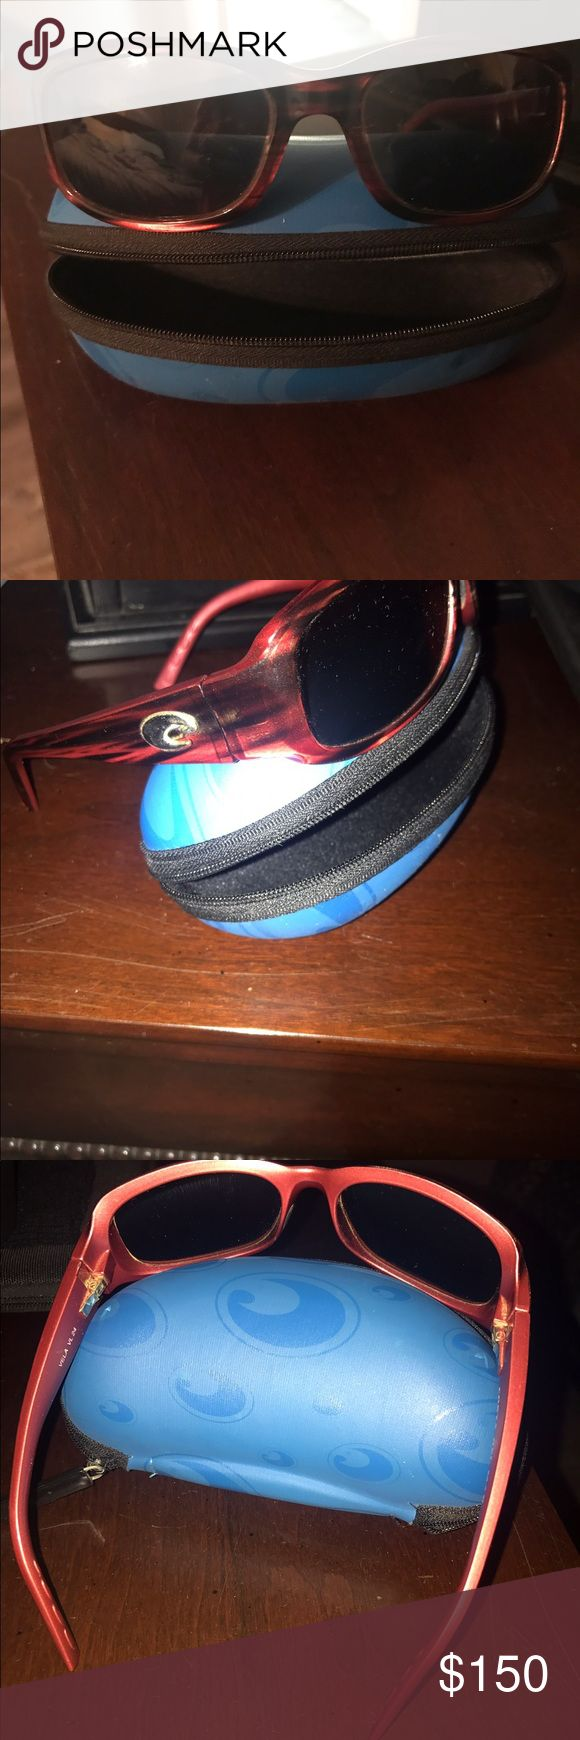 Women Costa Del Mar Sunglasses Women Costa Del Mar sunglasses. This pair is the vela style. I absolutely loved these but I got a new pair, so I'm letting these go. Perfect condition. Comes with the case. 😊 price is negotiable Accessories Sunglasses